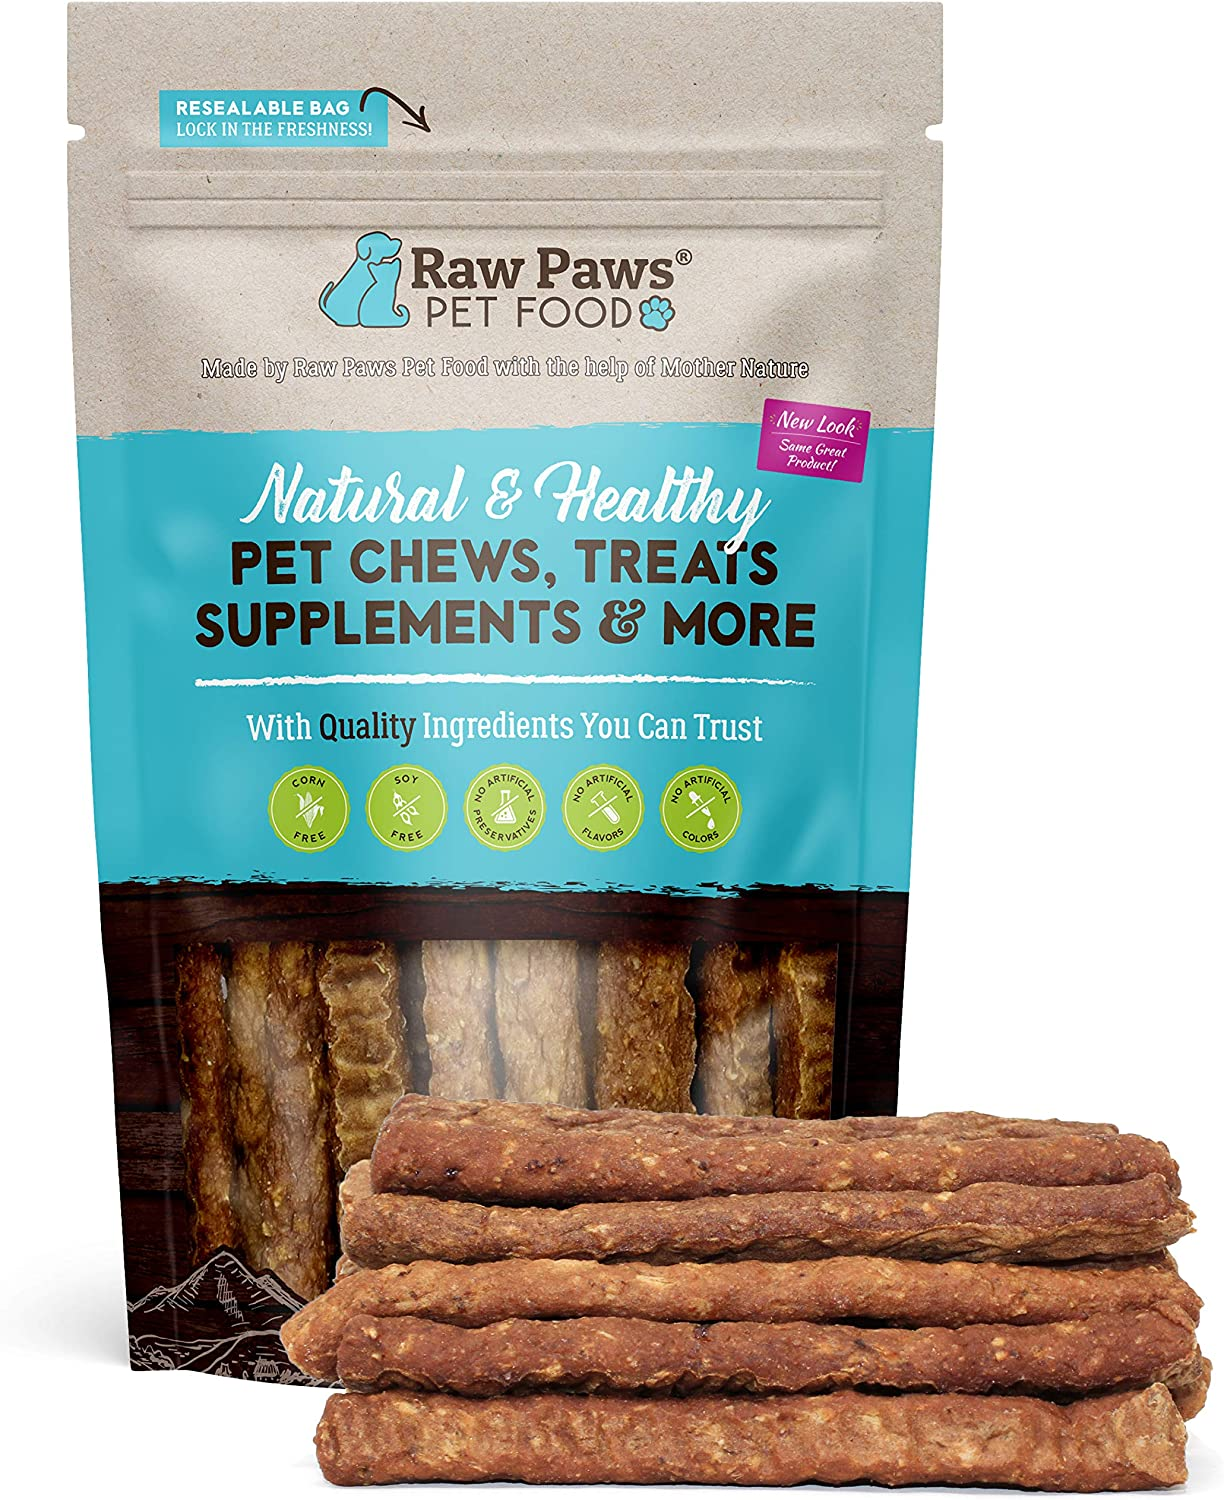 Raw Paws Chicken Sausage Sticks for Dogs & Cats, 6-oz - Made in USA - Soft Chicken Dog Treats Grain Free - Non Corn, Wheat or Soy - Natural Chicken Dog Jerky Sticks - Chewy Chicken Jerky for Dogs